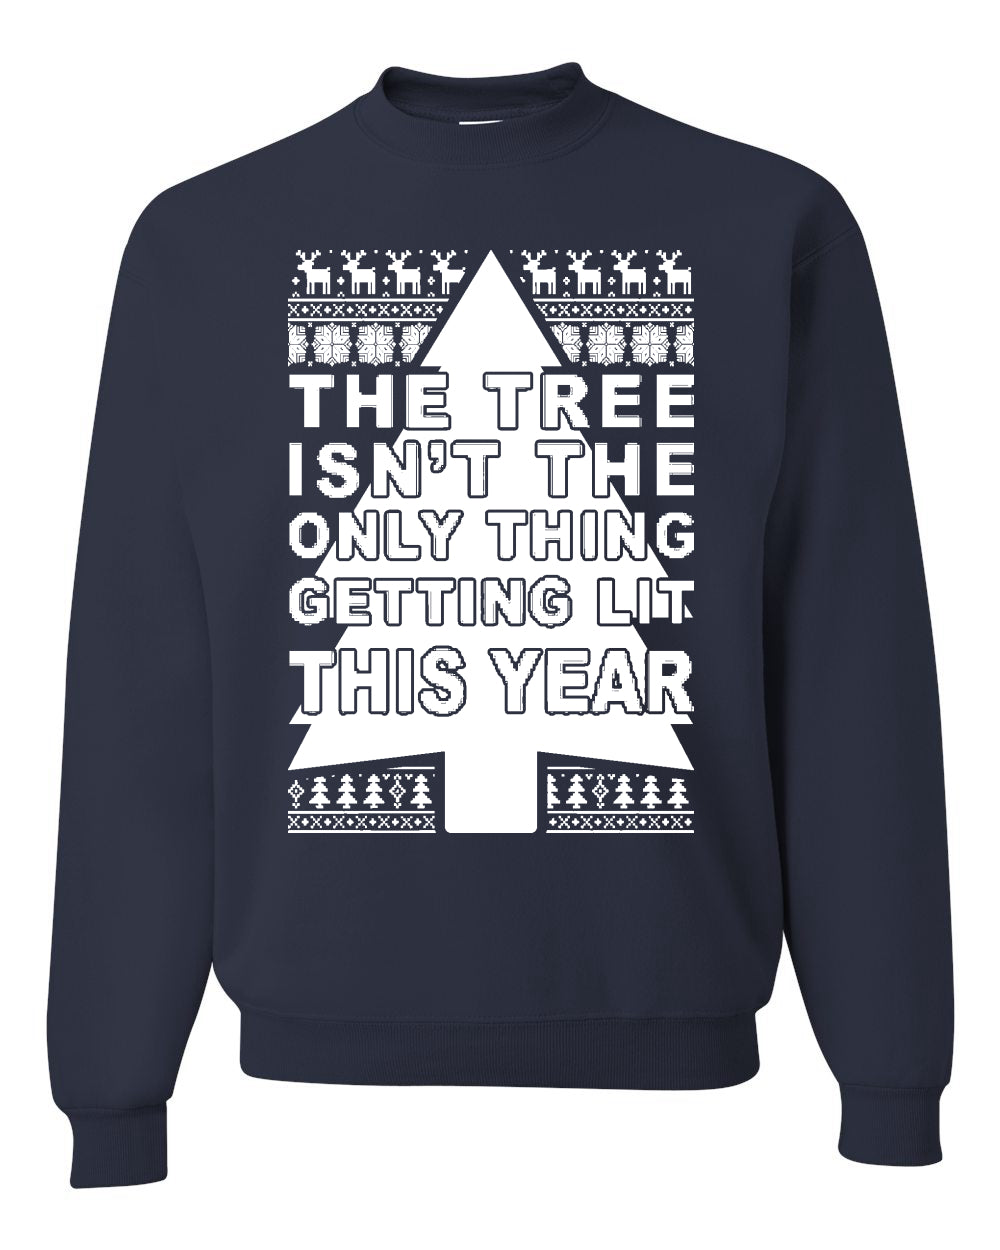 The Tree Isn't The Only Thing Getting Lit This Year Christmas Unisex Crewneck Graphic Sweatshirt